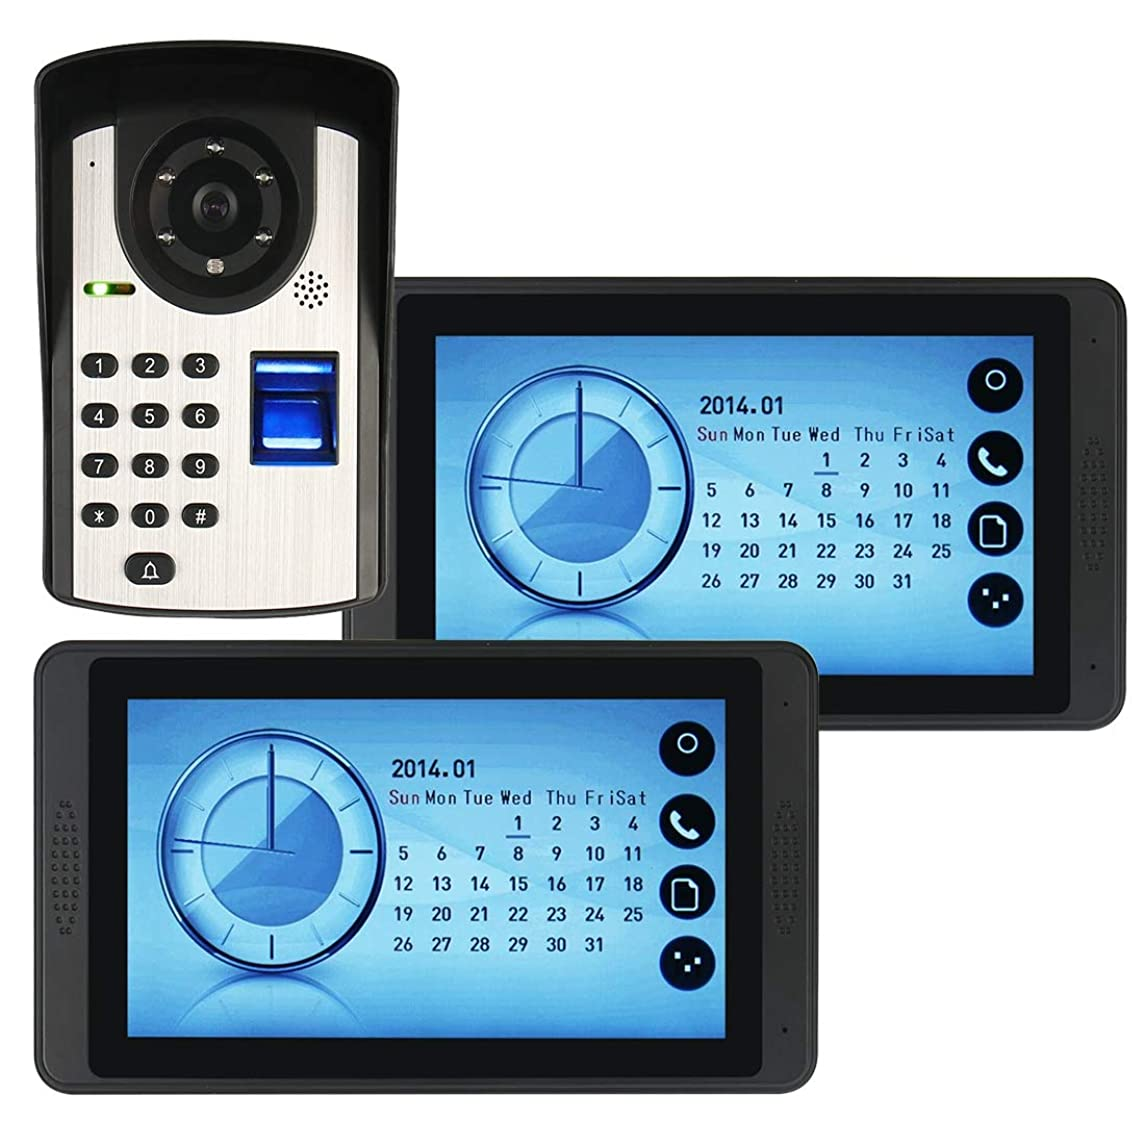 JINPENGPEN 7 inch Touch Screen Video doorbell Telephone intercom System Remote Unlock Night Vision Function Home Monitoring